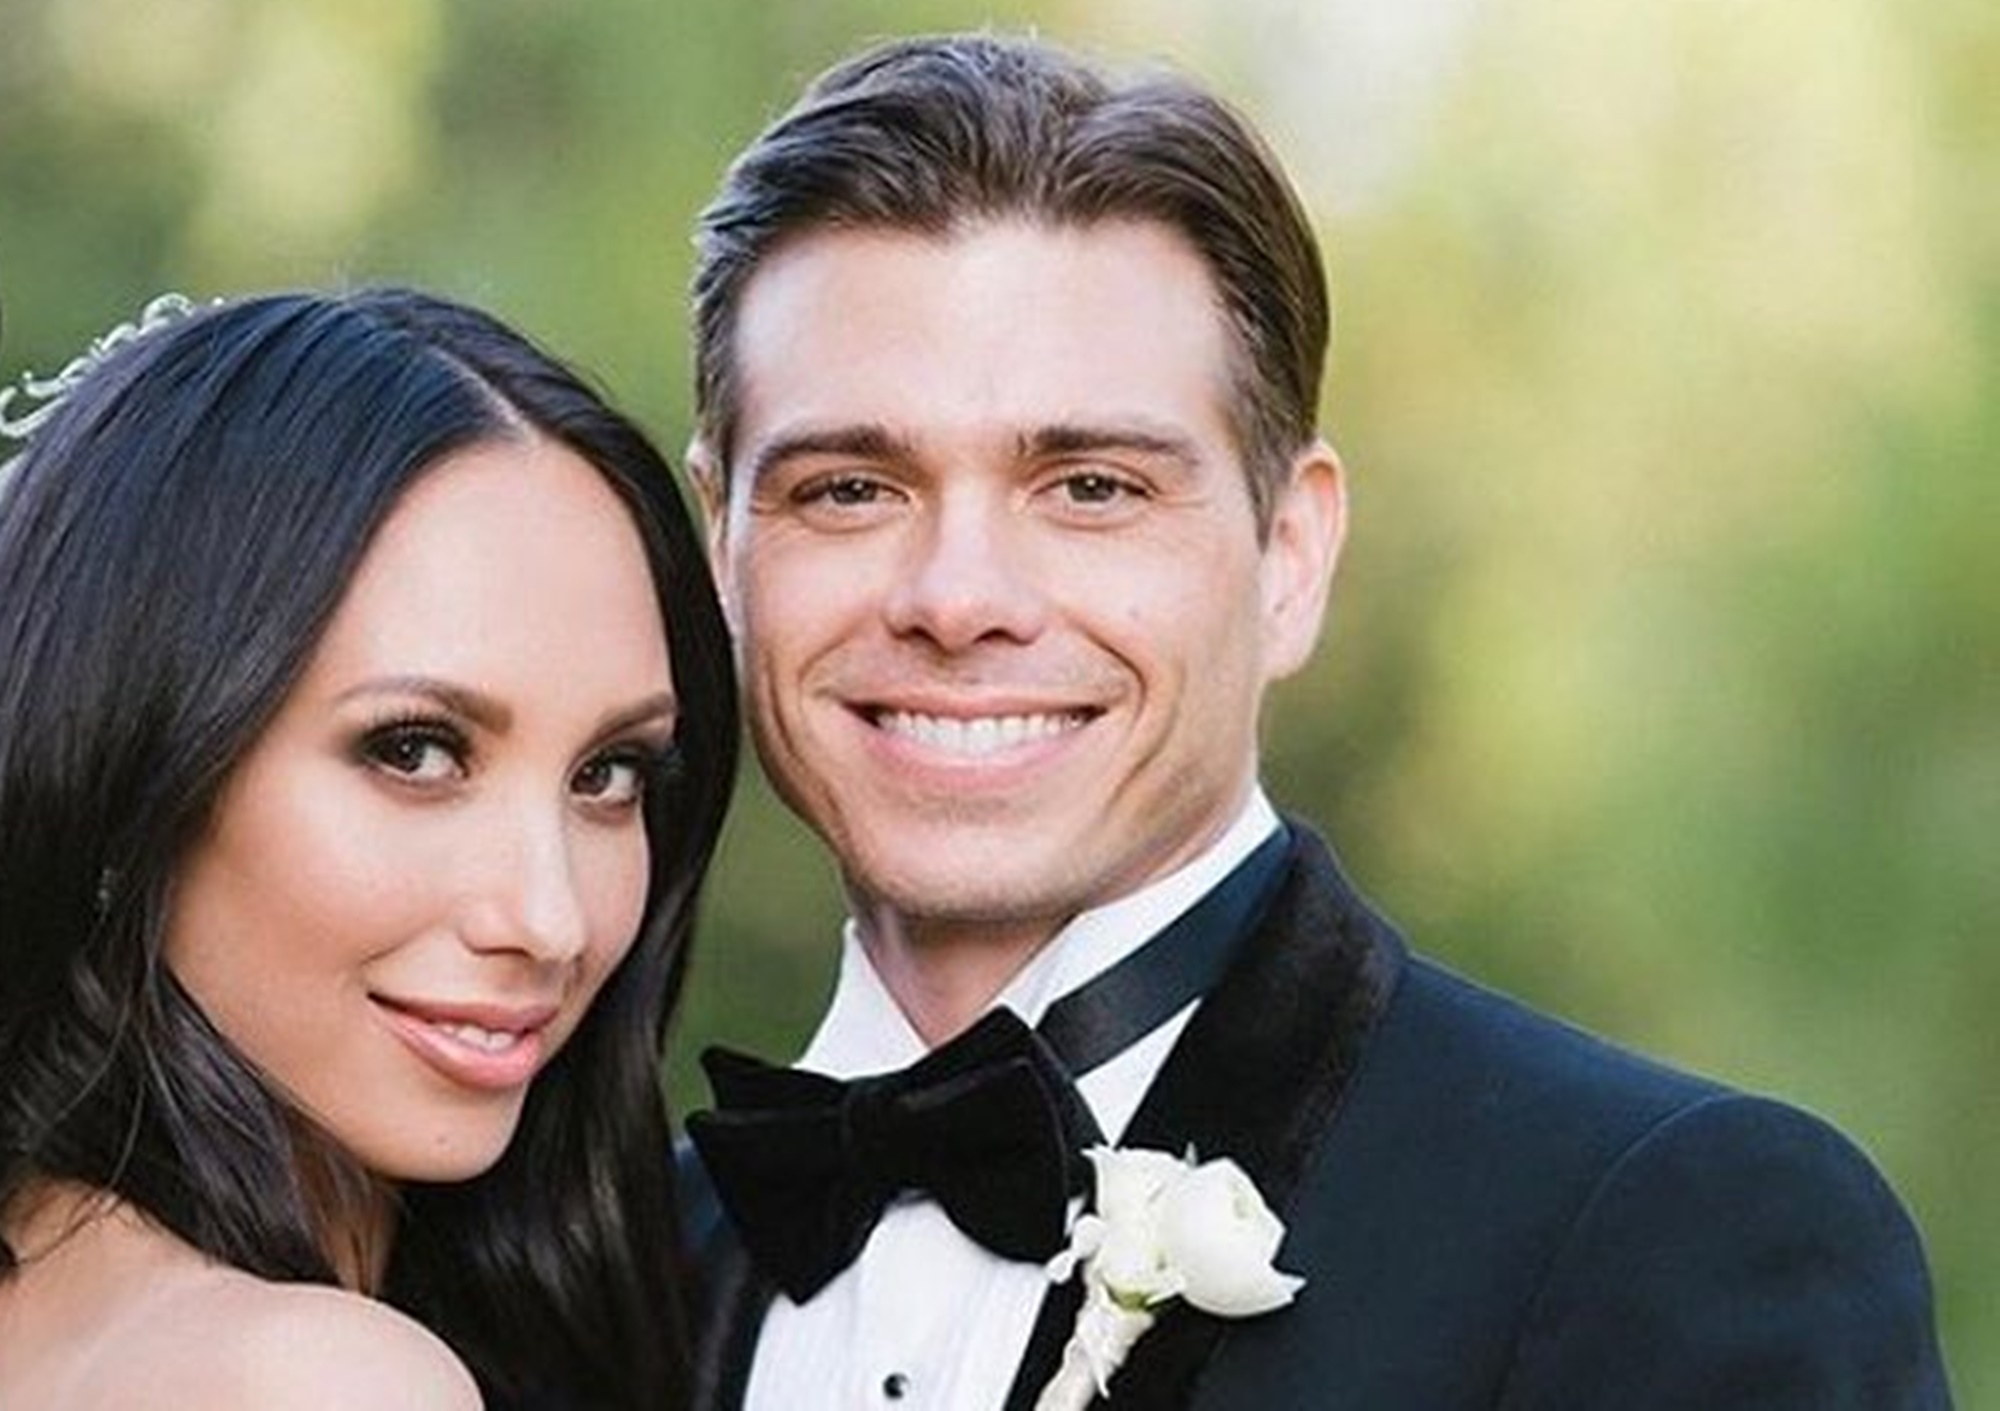 cheryl-burke-and-matthew-lawrence-got-married-here-is-what-carrie-ann-inaba-had-to-say-about-this-wedding-picture